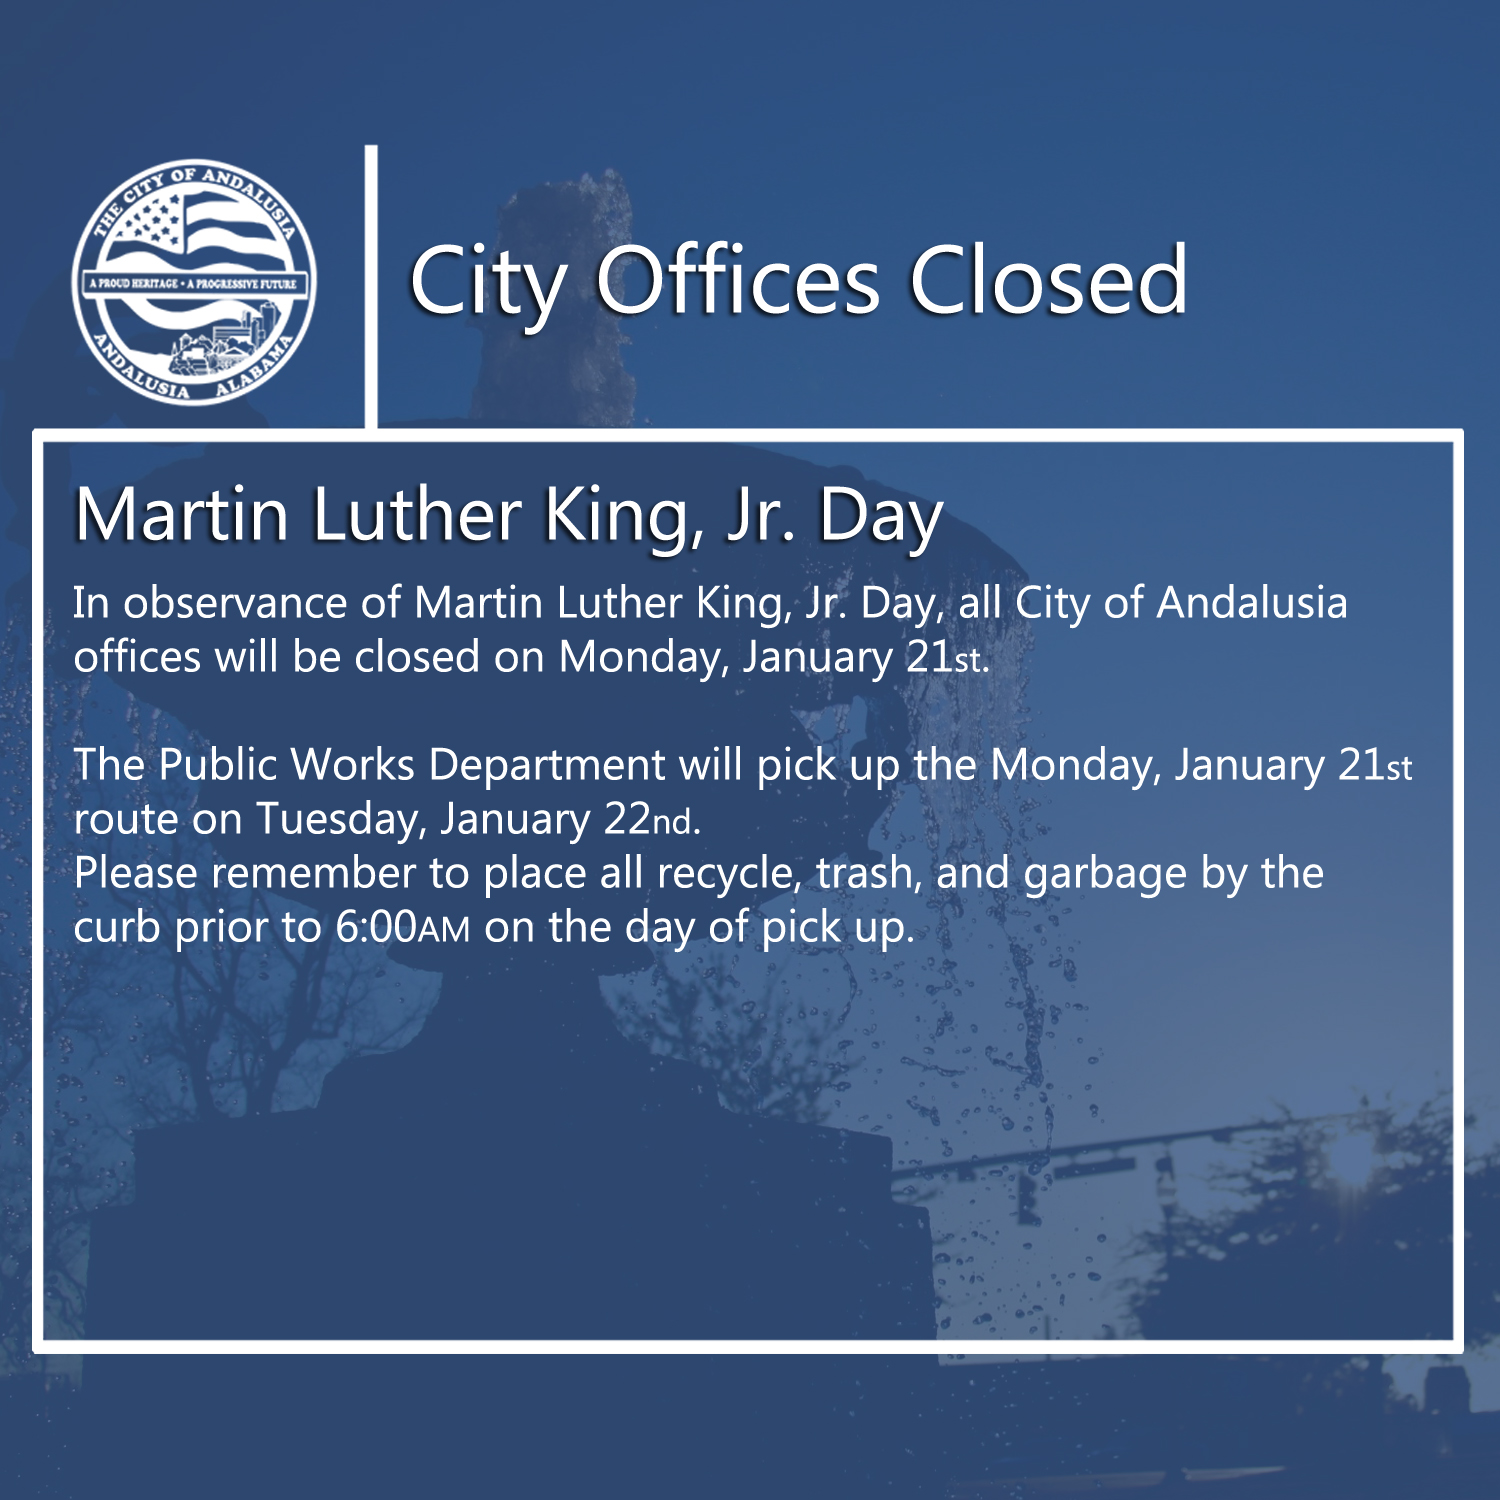 Facebook City Offices Closed Martin Luther King